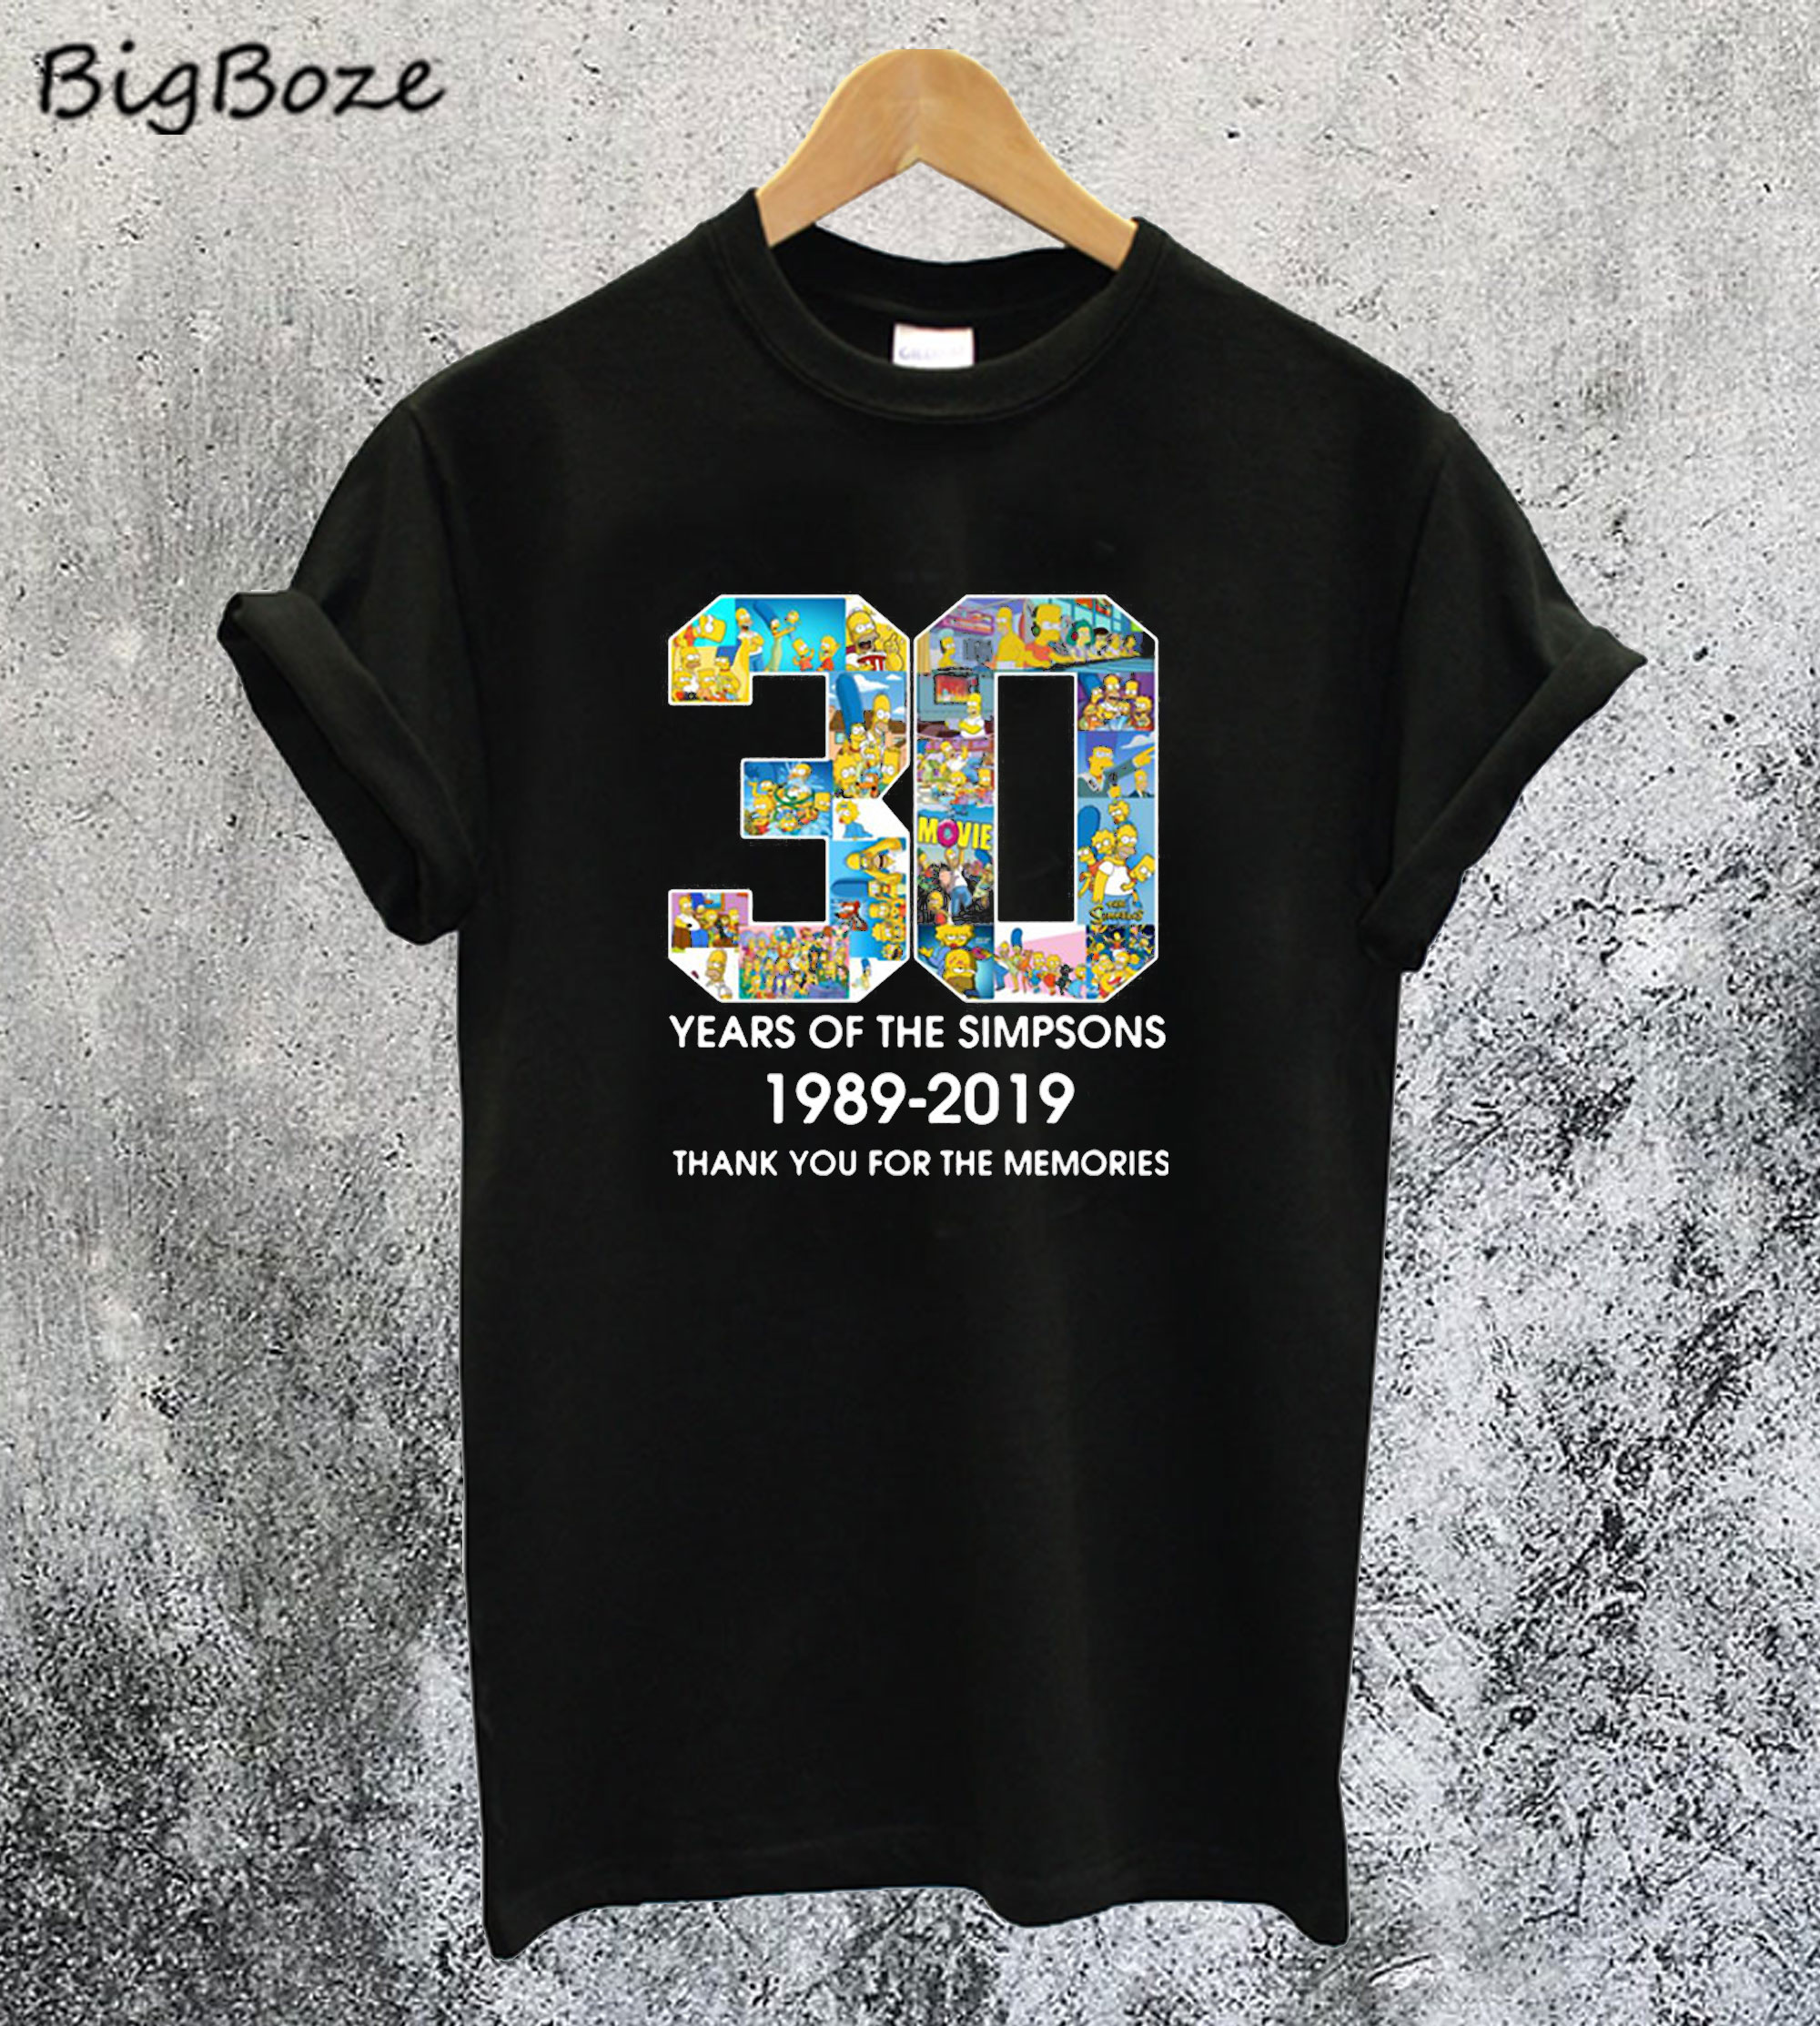 30 Years of The Simpsons 1989 - 2019 T-Shirt